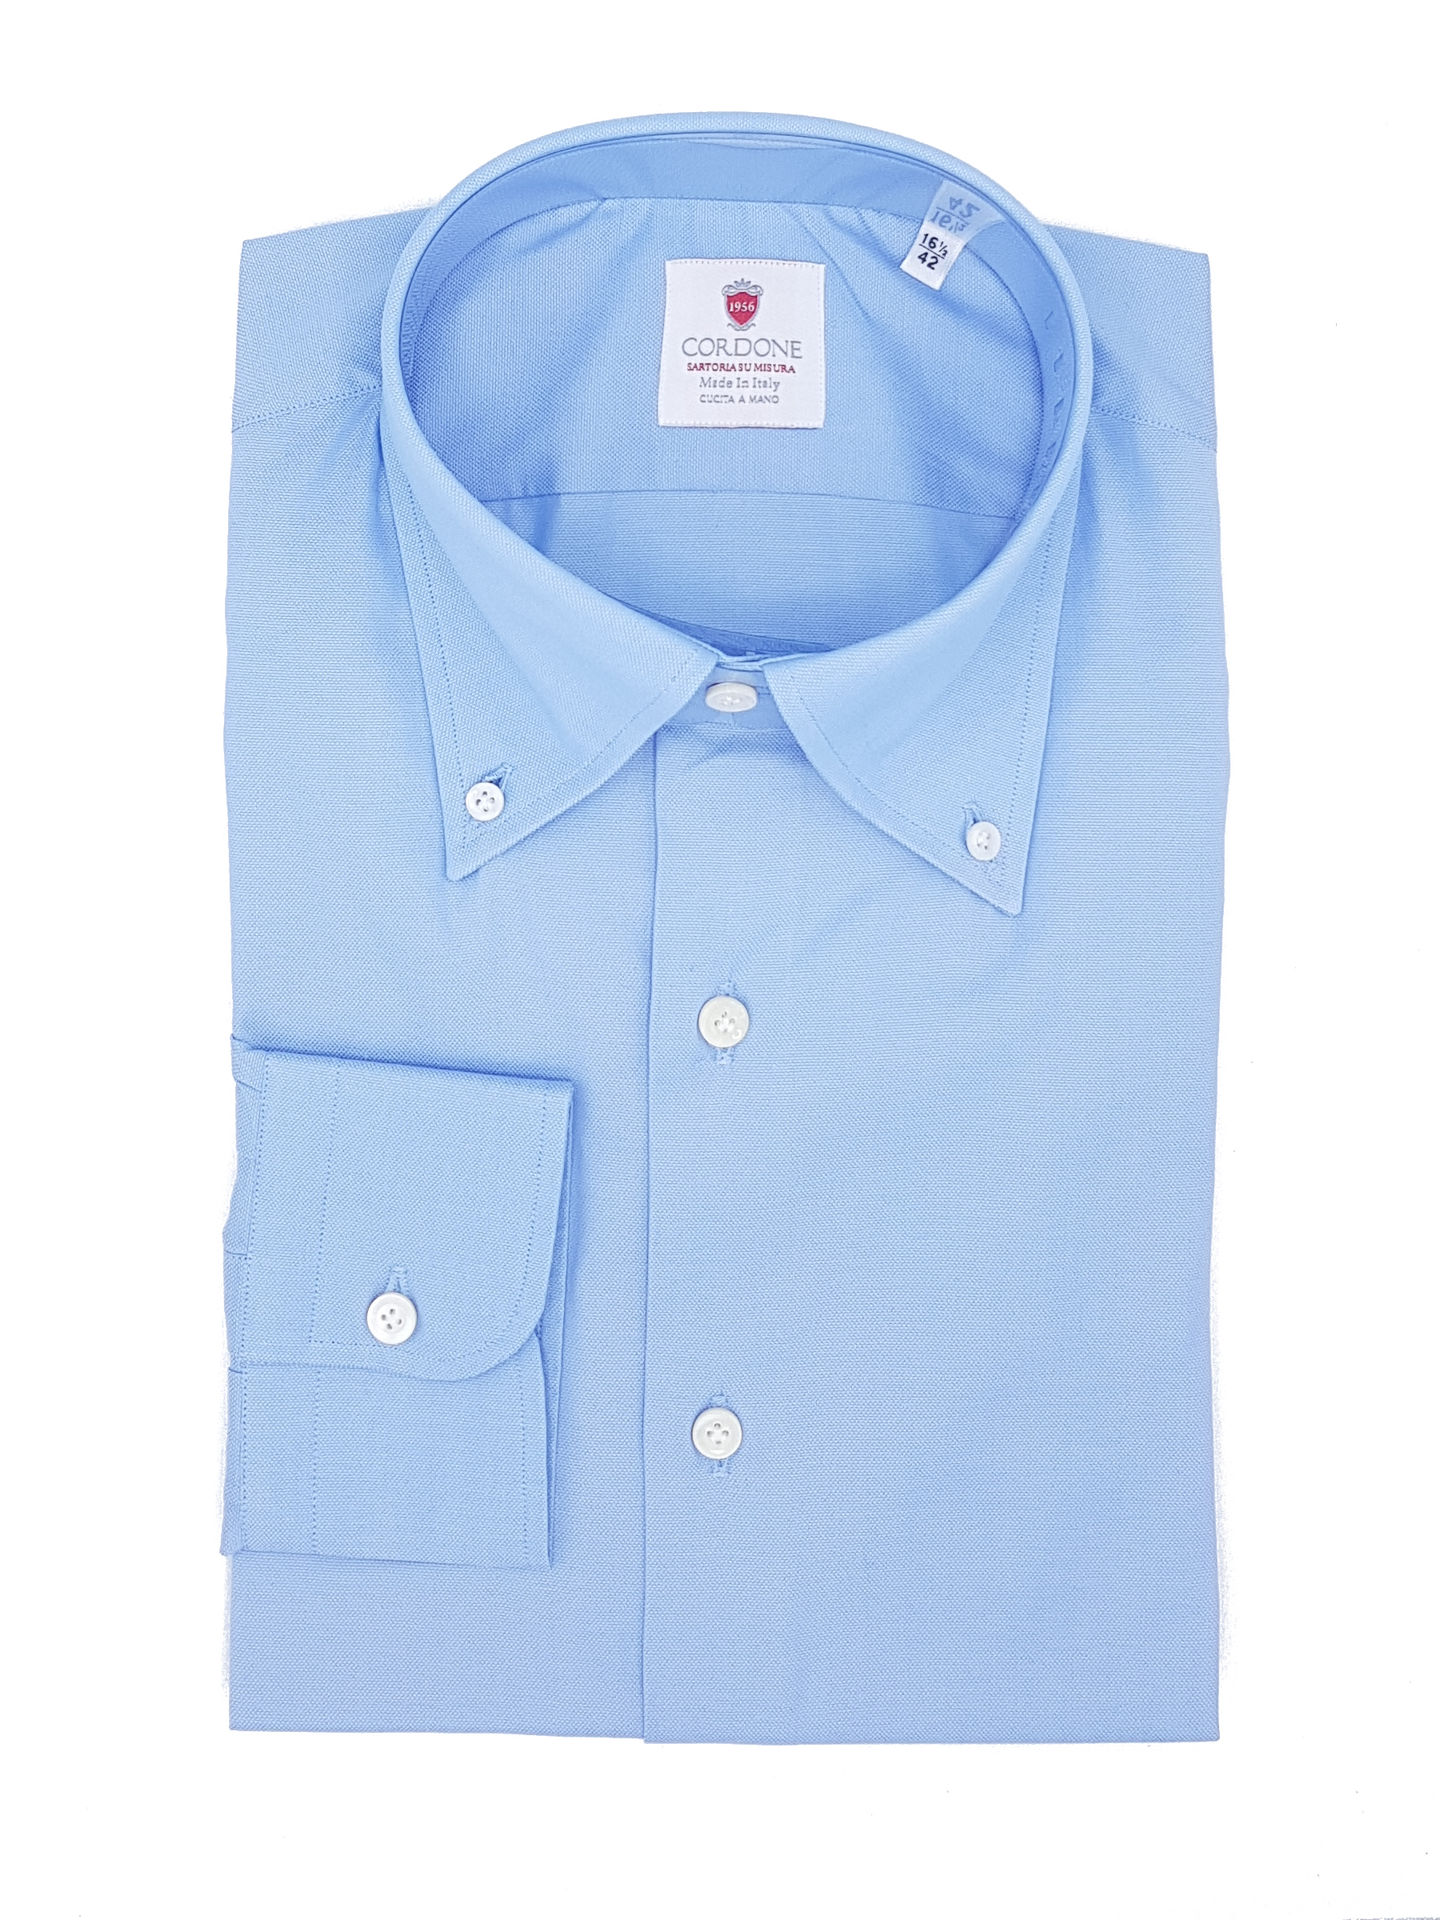 Cordone 1956 Button Down Shirt